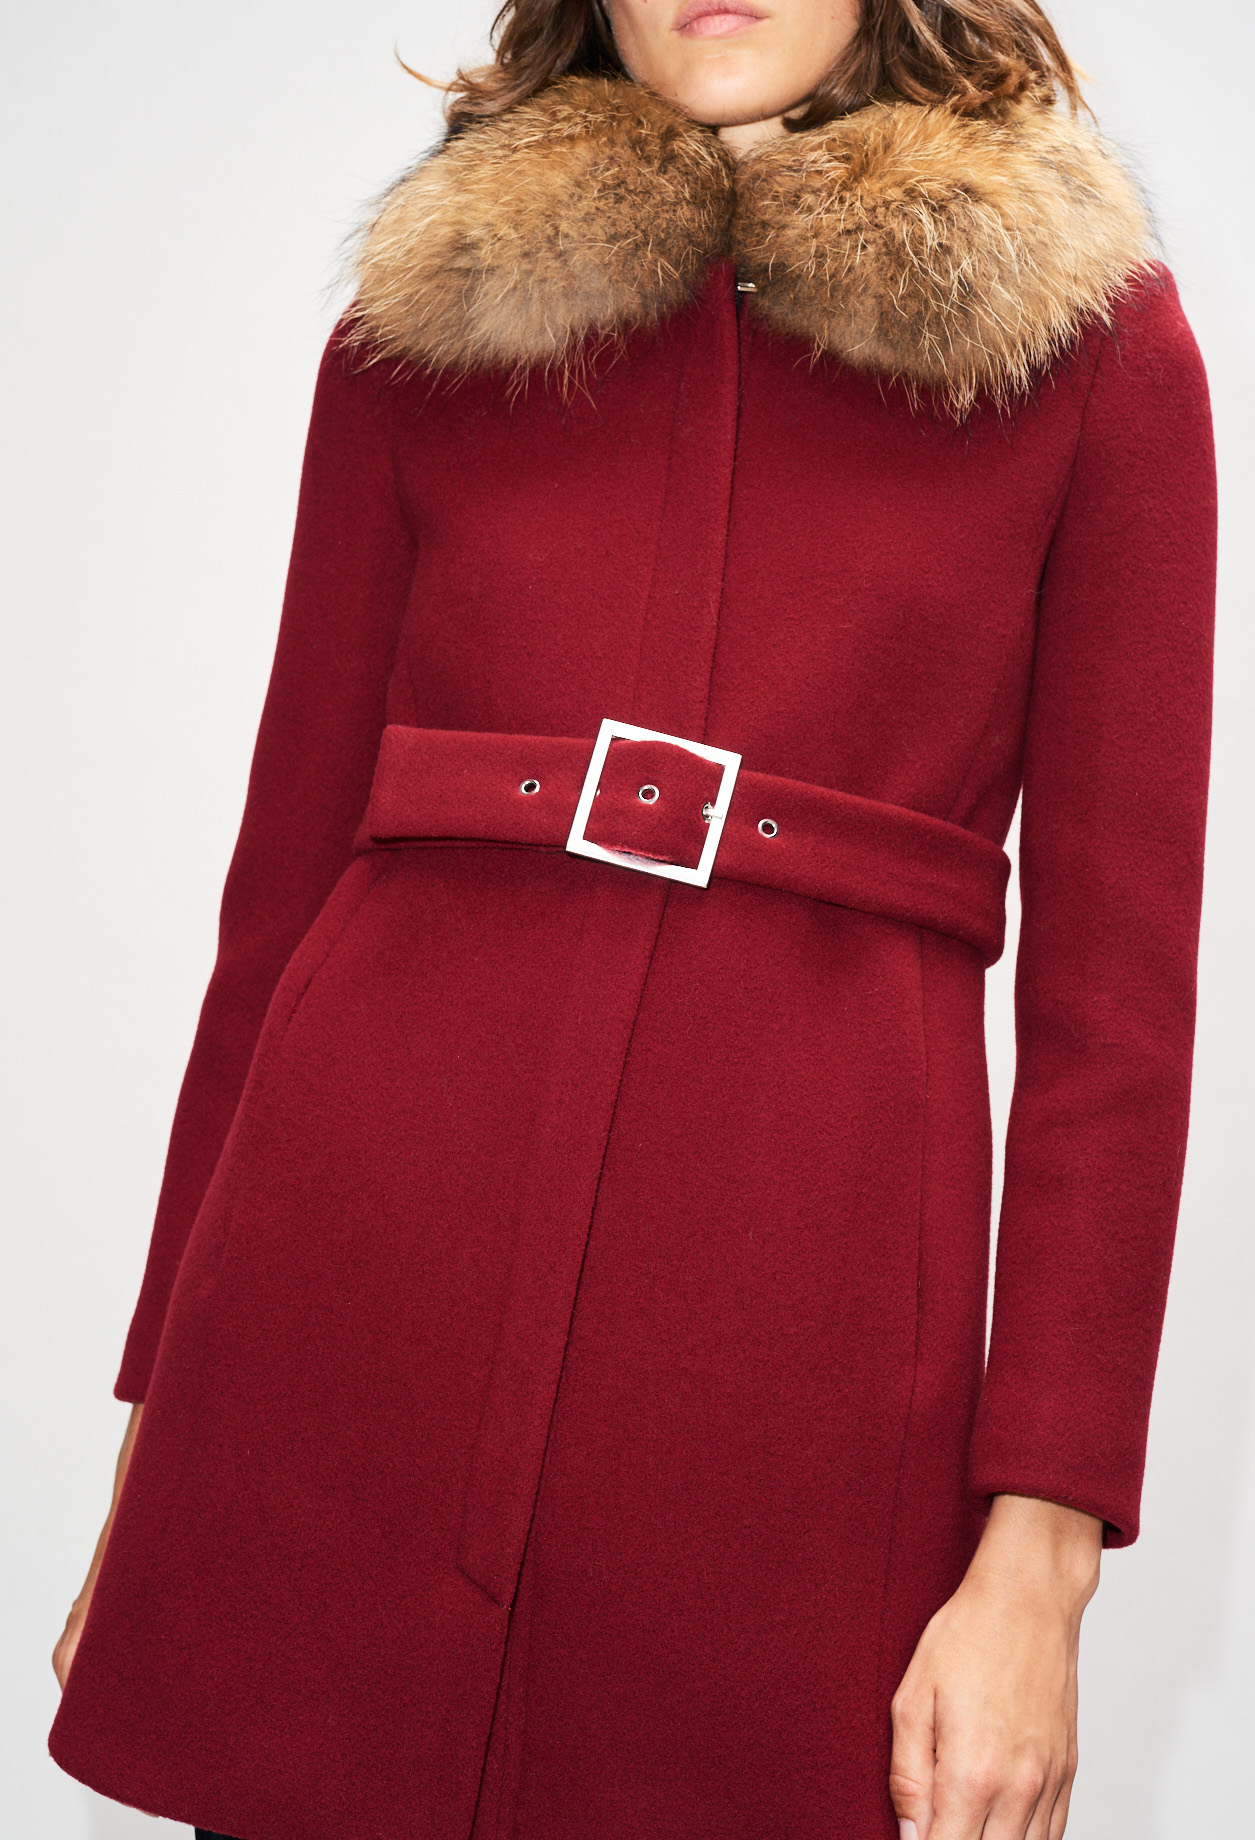 Waisted coat with fur collar